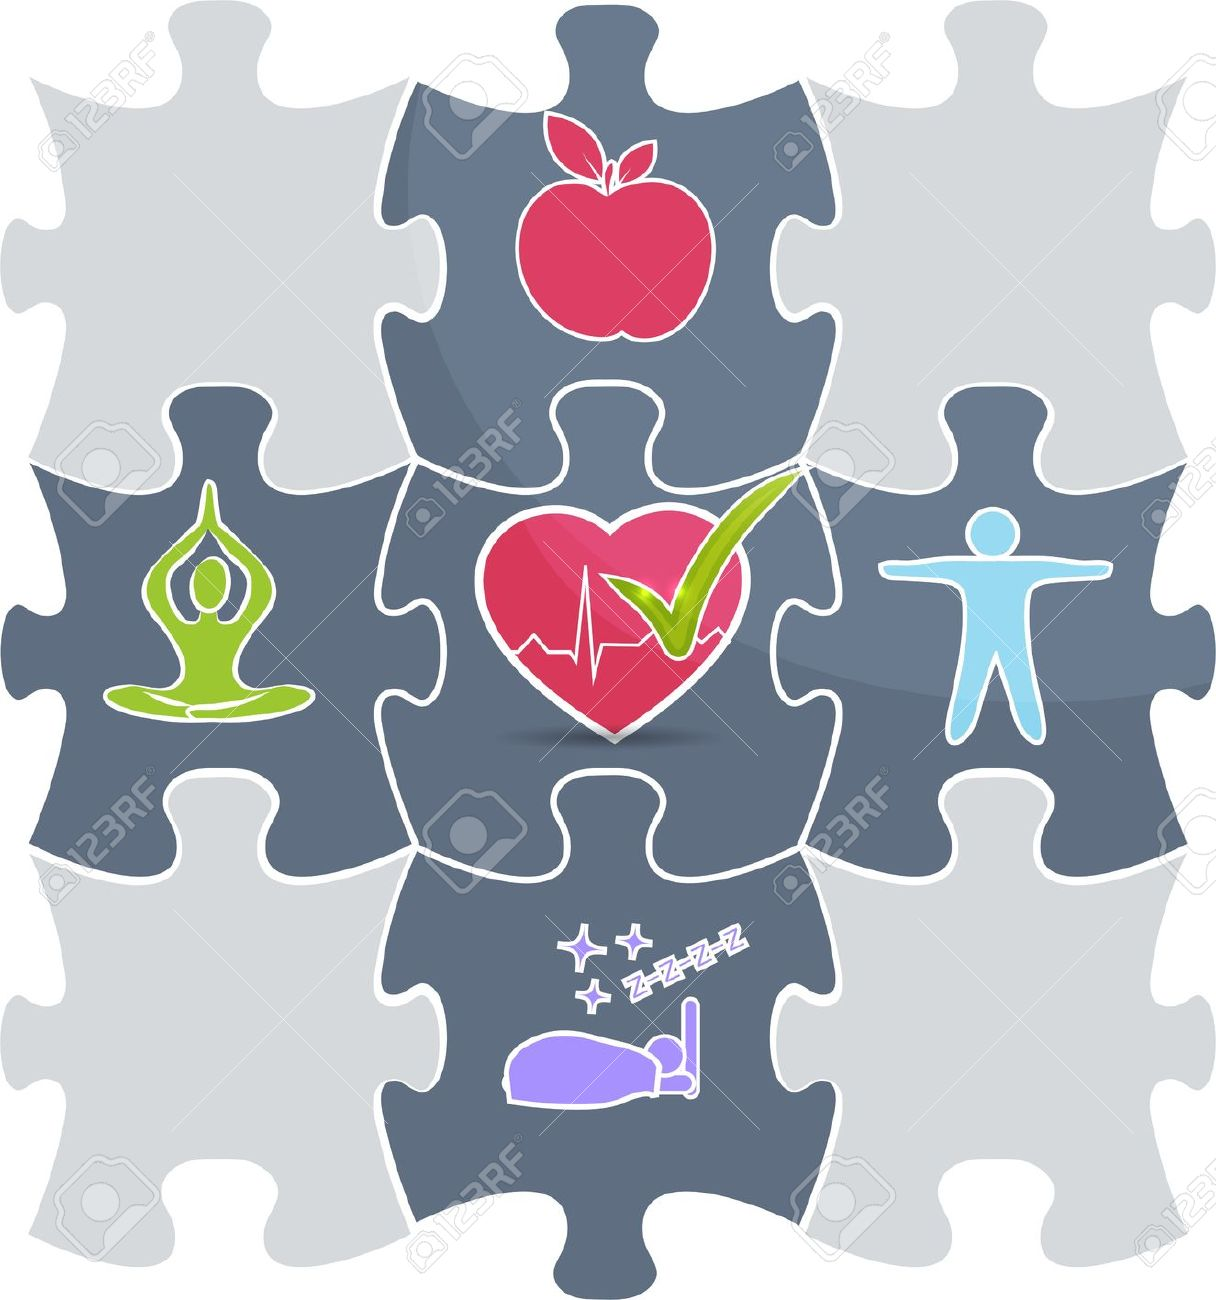 Clipart work life fit png freeuse Clipart work life fit puzzle - ClipartFest png freeuse